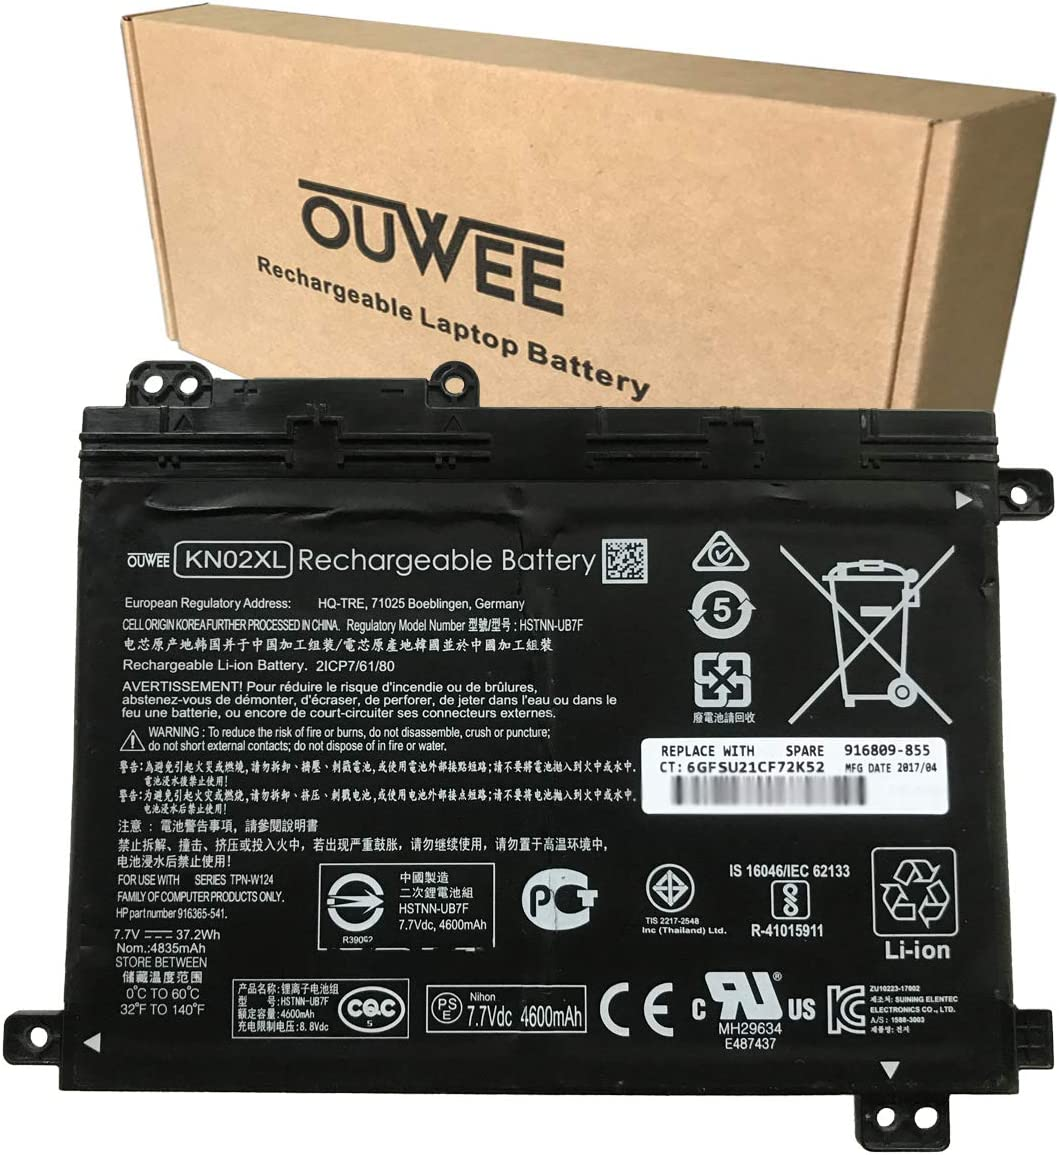 OUWEE KN02XL Laptop Battery Compatible with HP Pavilion x360 11-AD 11-AD010CA 11-AD051NR 11M-AD013DX 11-ad001TU Series HSTNN-LB7R HSTNN-UB7F 916365-421 916365-541 916809-855 TPN-W124 7.7V 37.2Wh